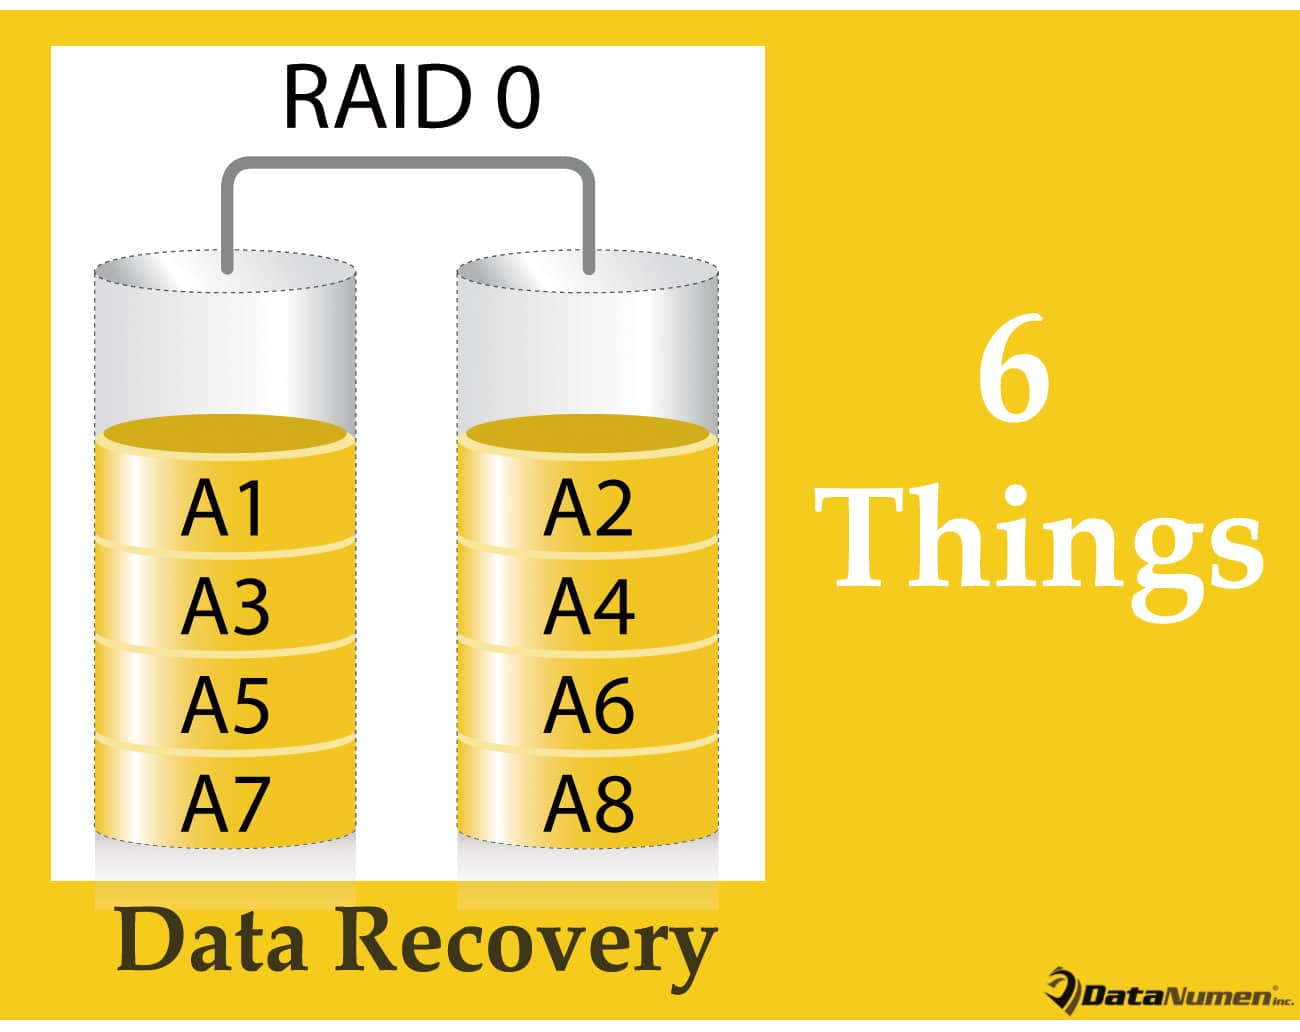 6 Important Things You Must Know about RAID 0 Data Recovery